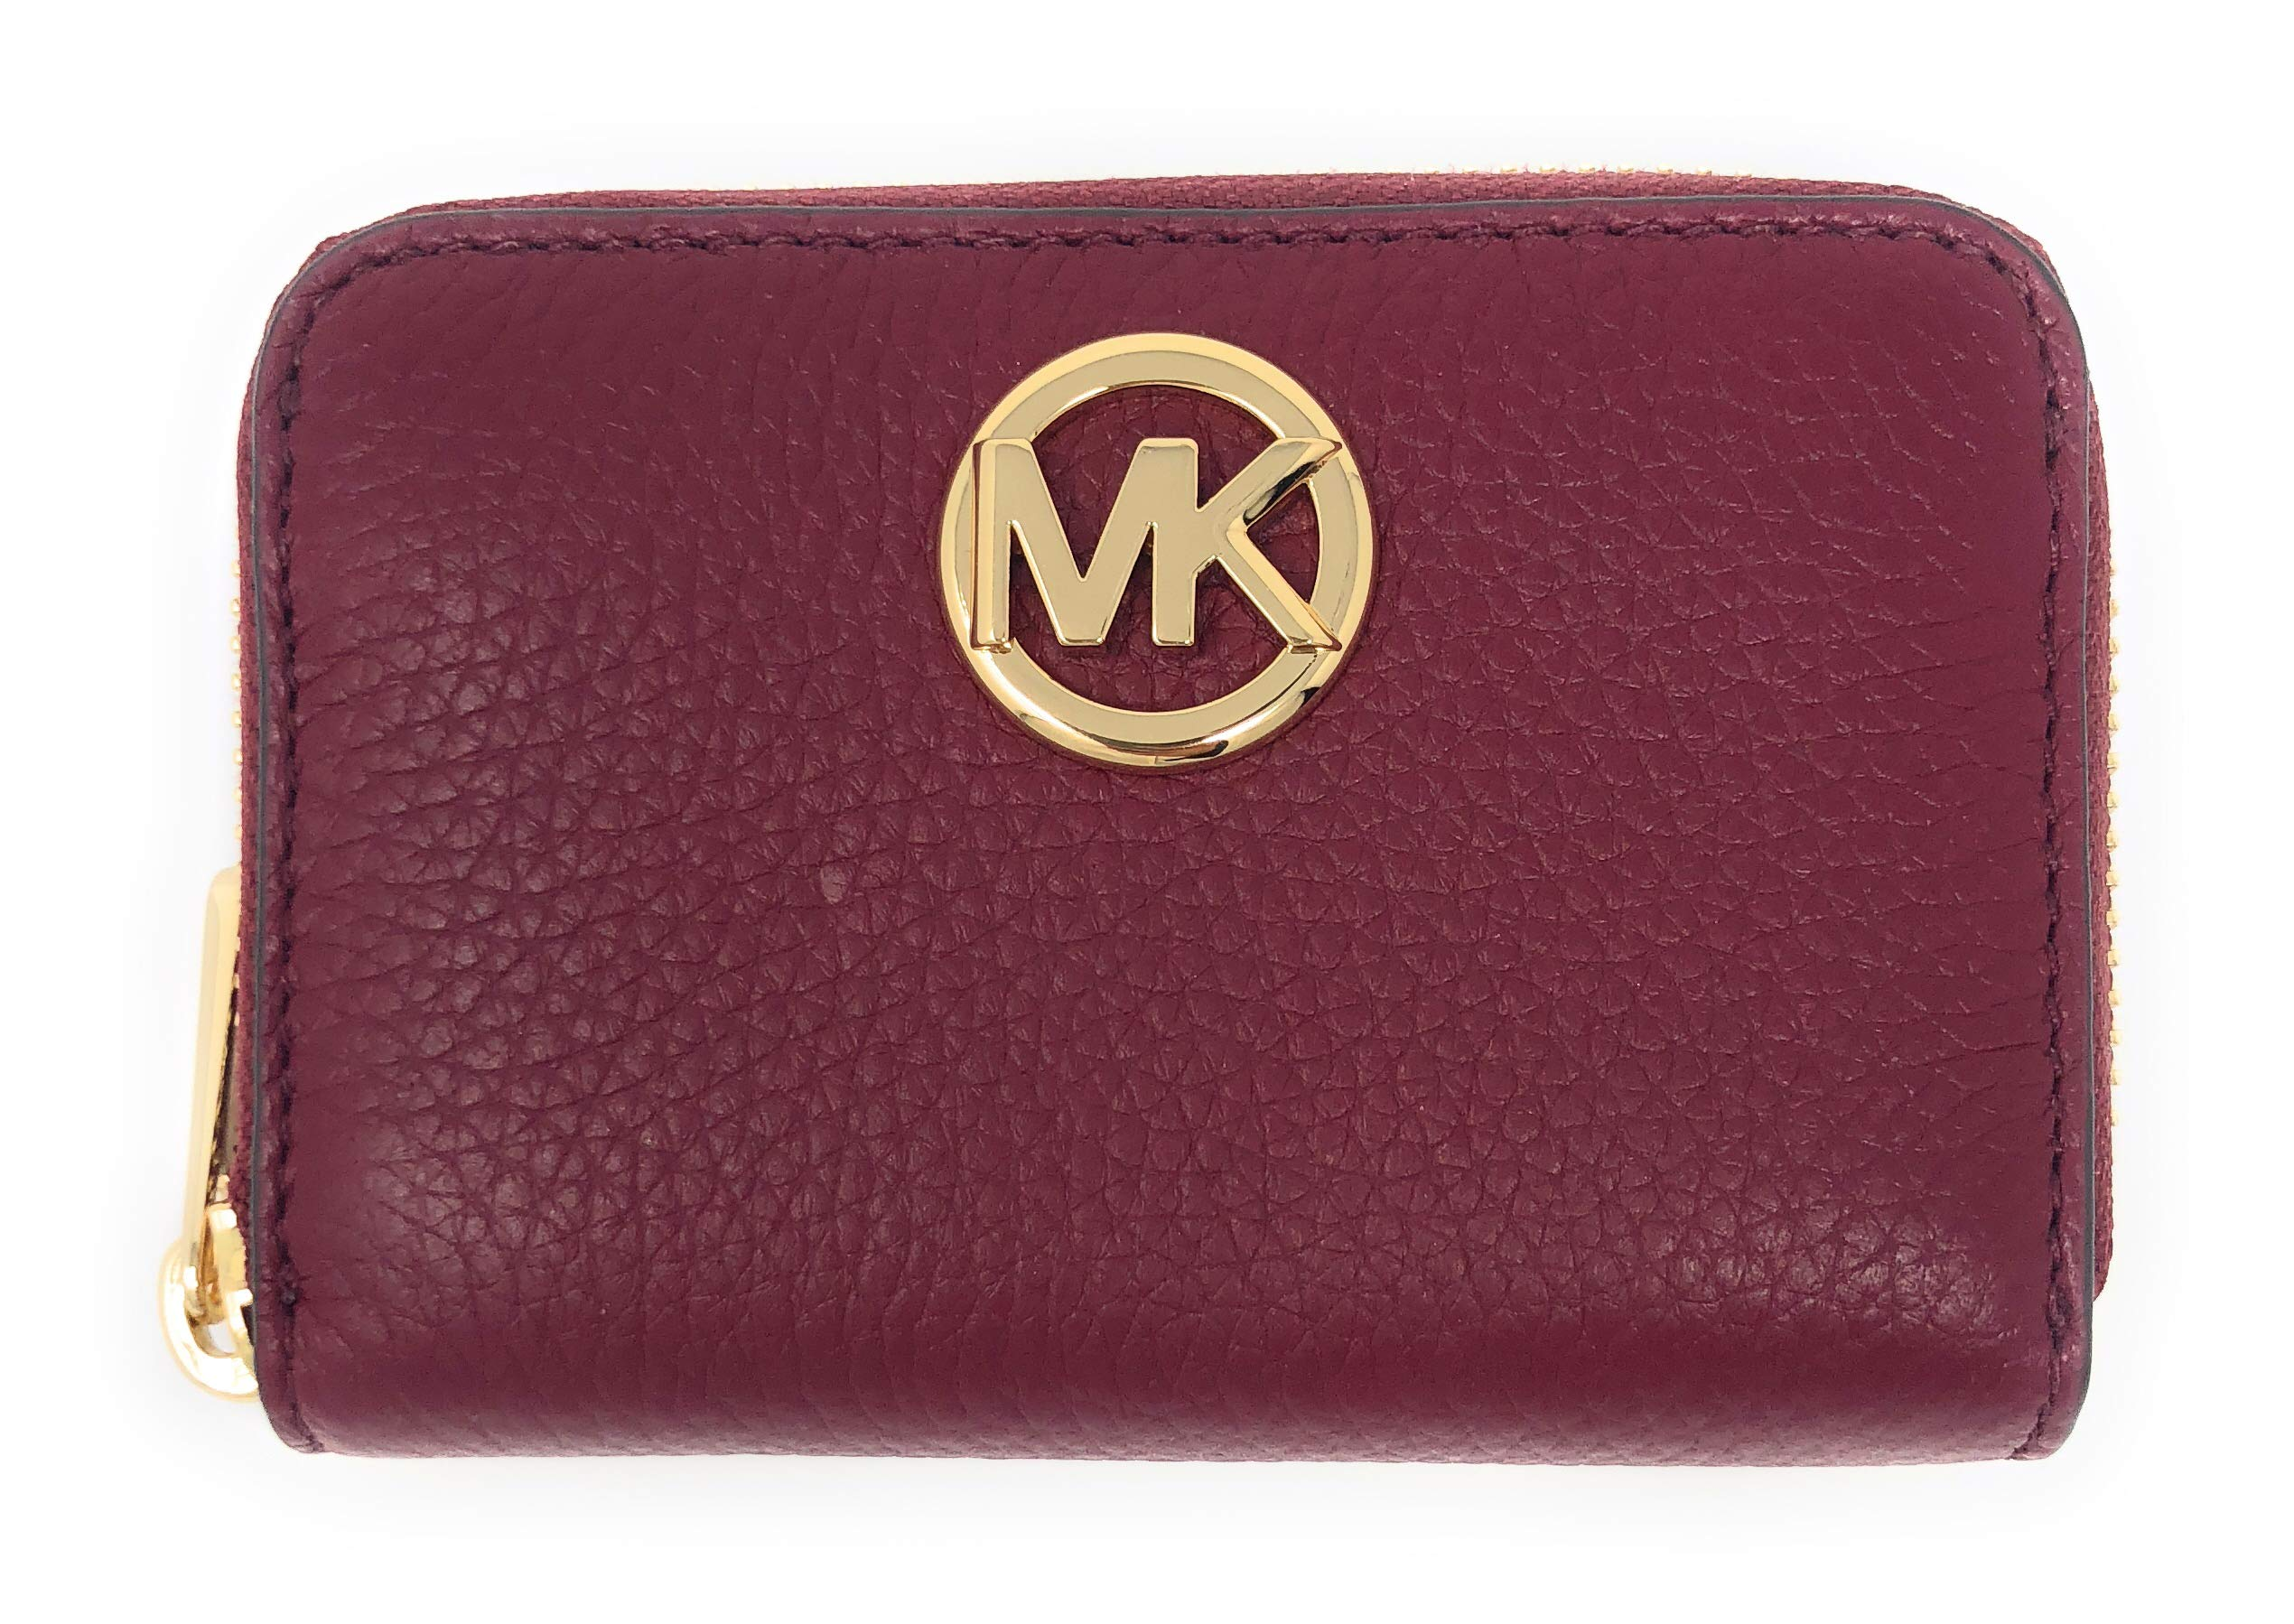 Michael Kors Fulton Leather Zip Around Coin Case (Mulberry Red) by Michael Kors